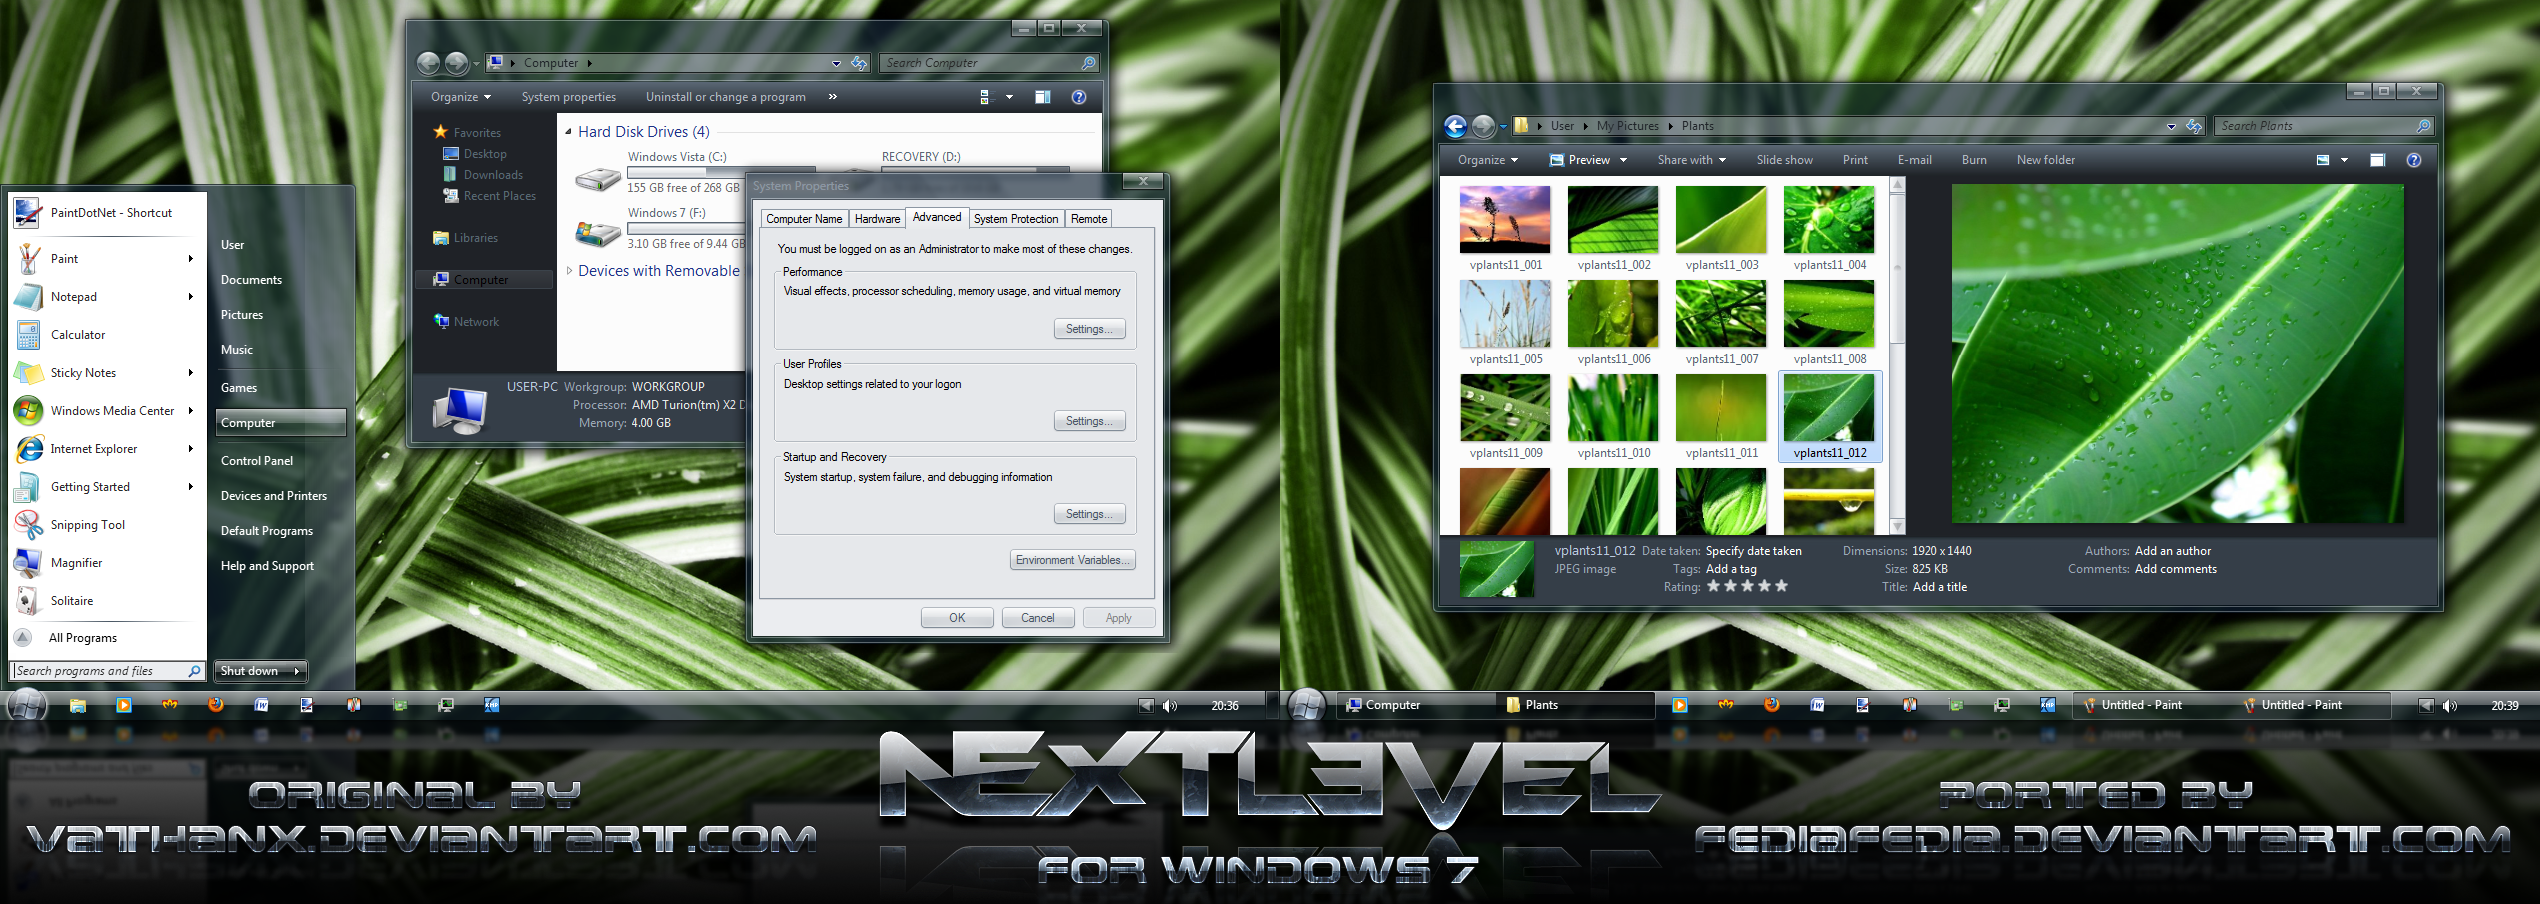 NEXTlevel port for Win7